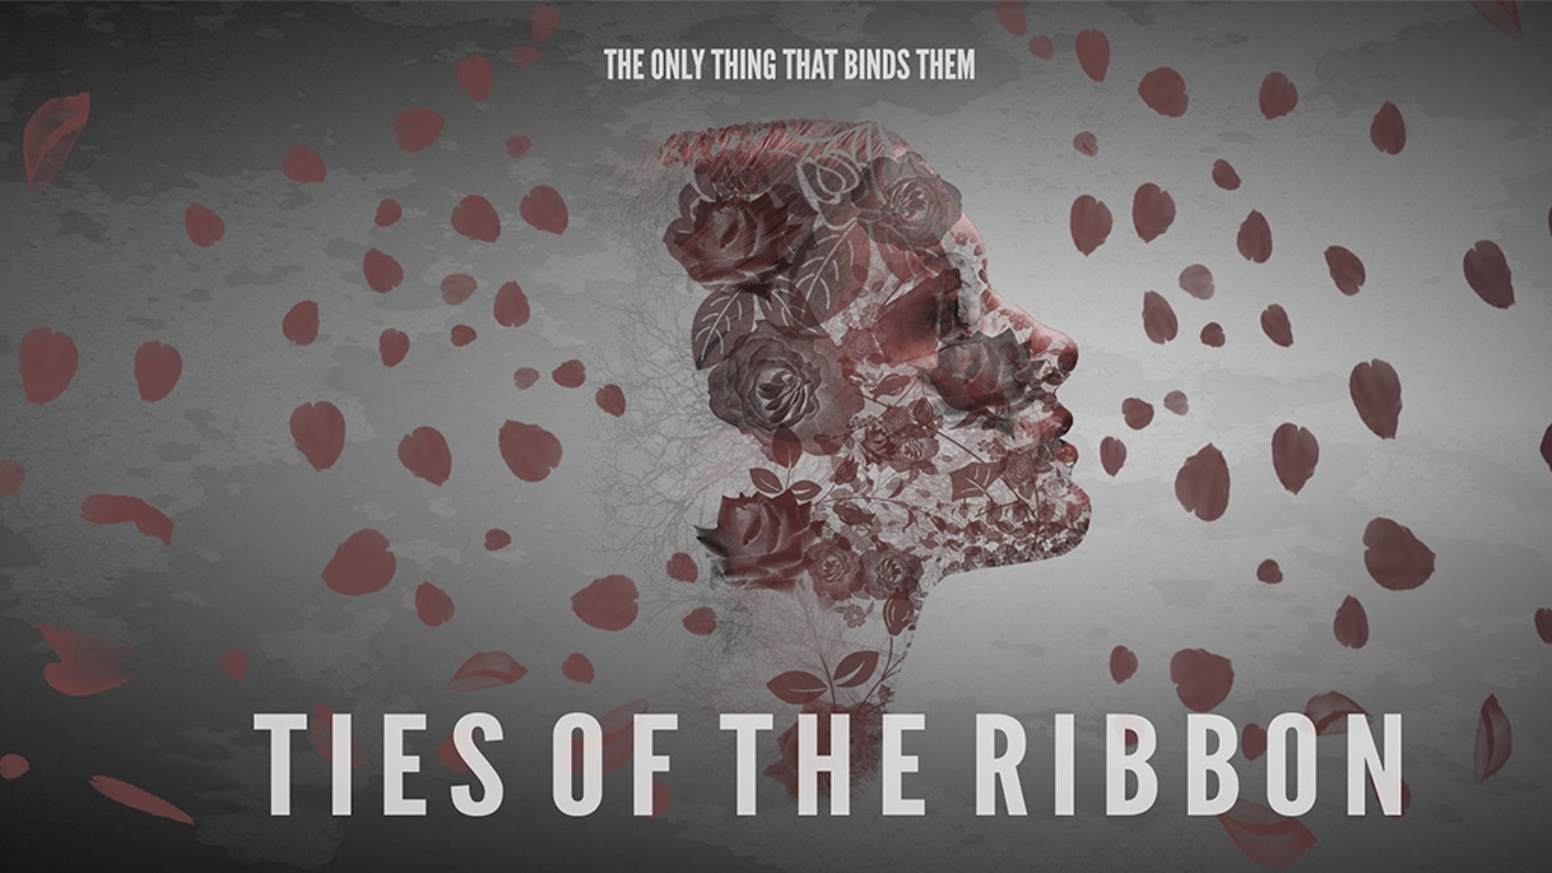 Ties of the Ribbon is a short film following two men and the mysterious disappearances of women over the last 2 years. If you want to be a part of the movie or donate/support Click the link below